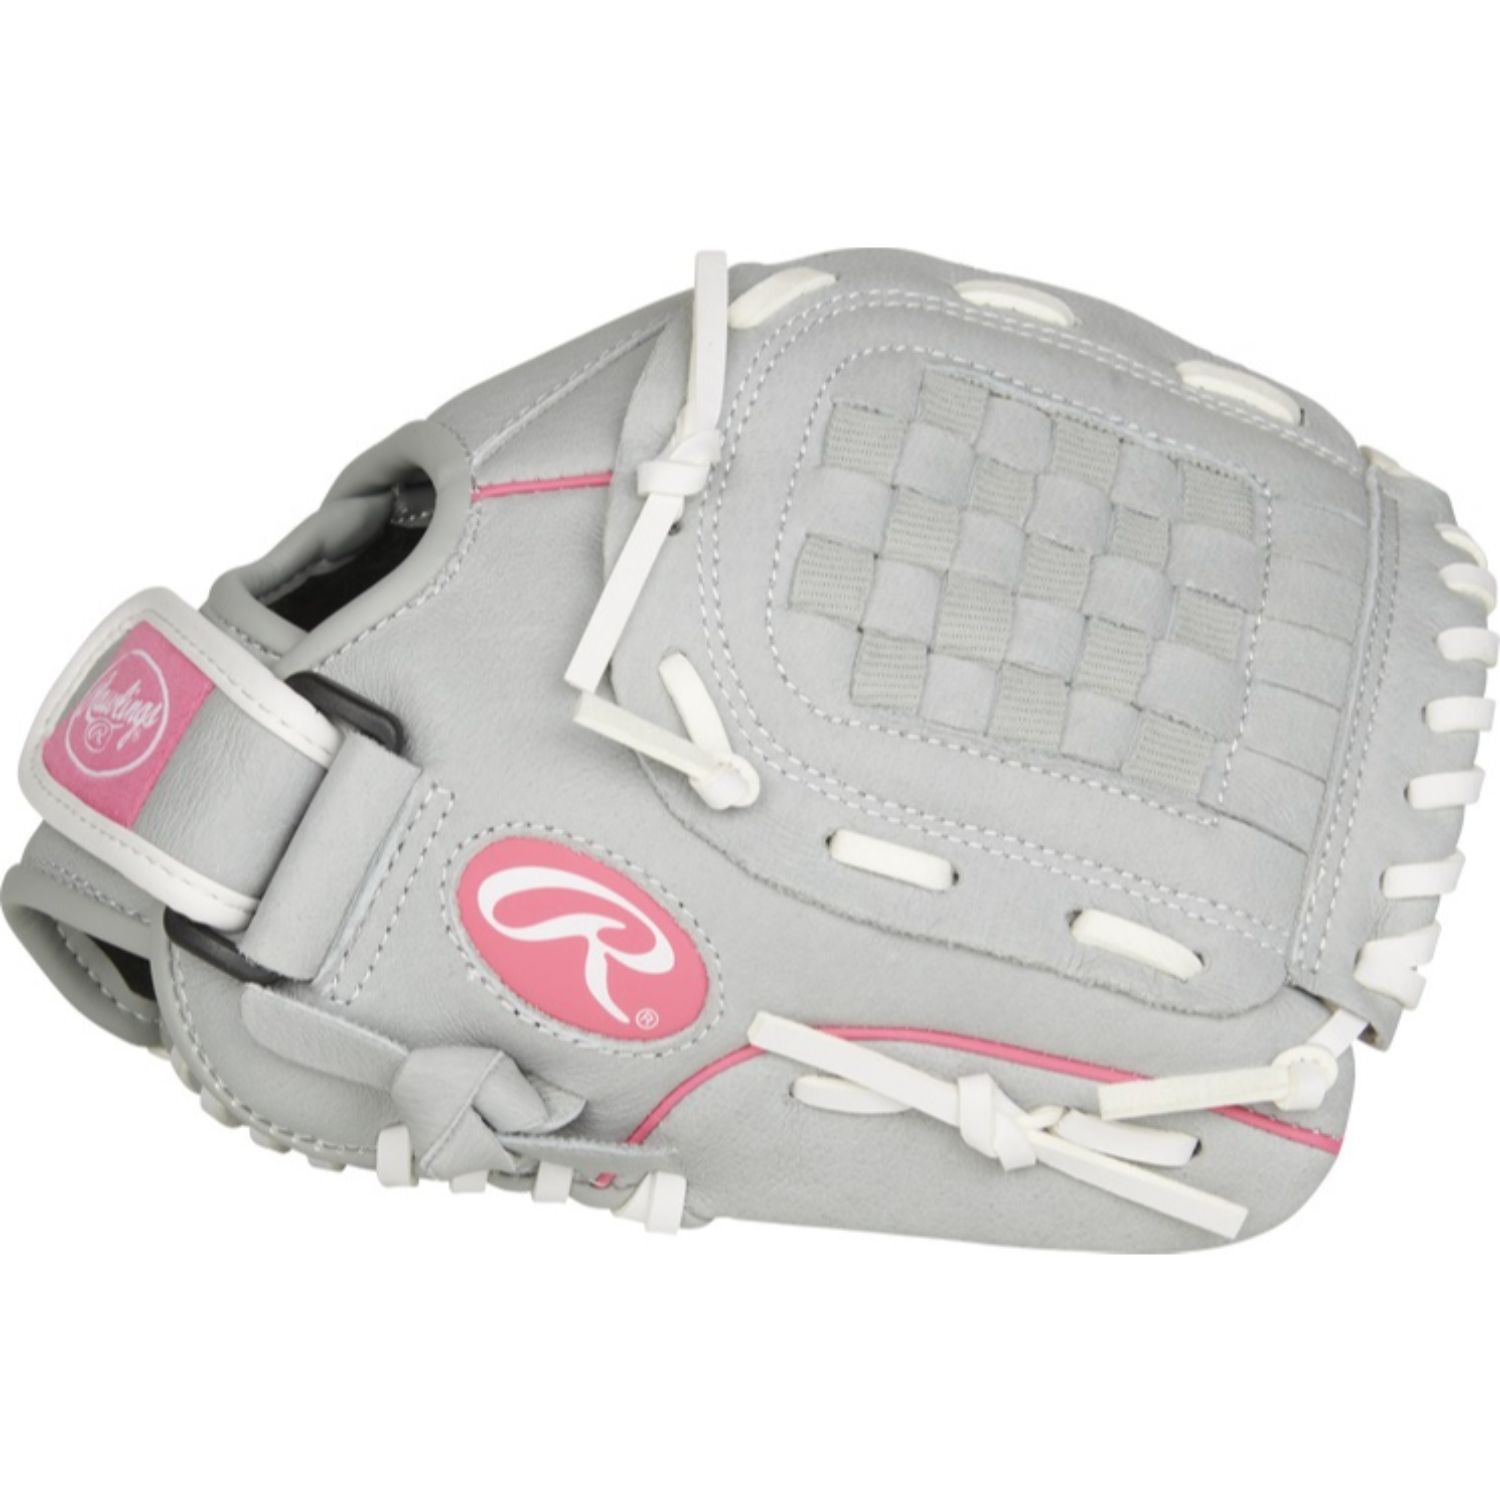 Rawlings Sure Catch 10.5 In Youth Sofball Glove RH